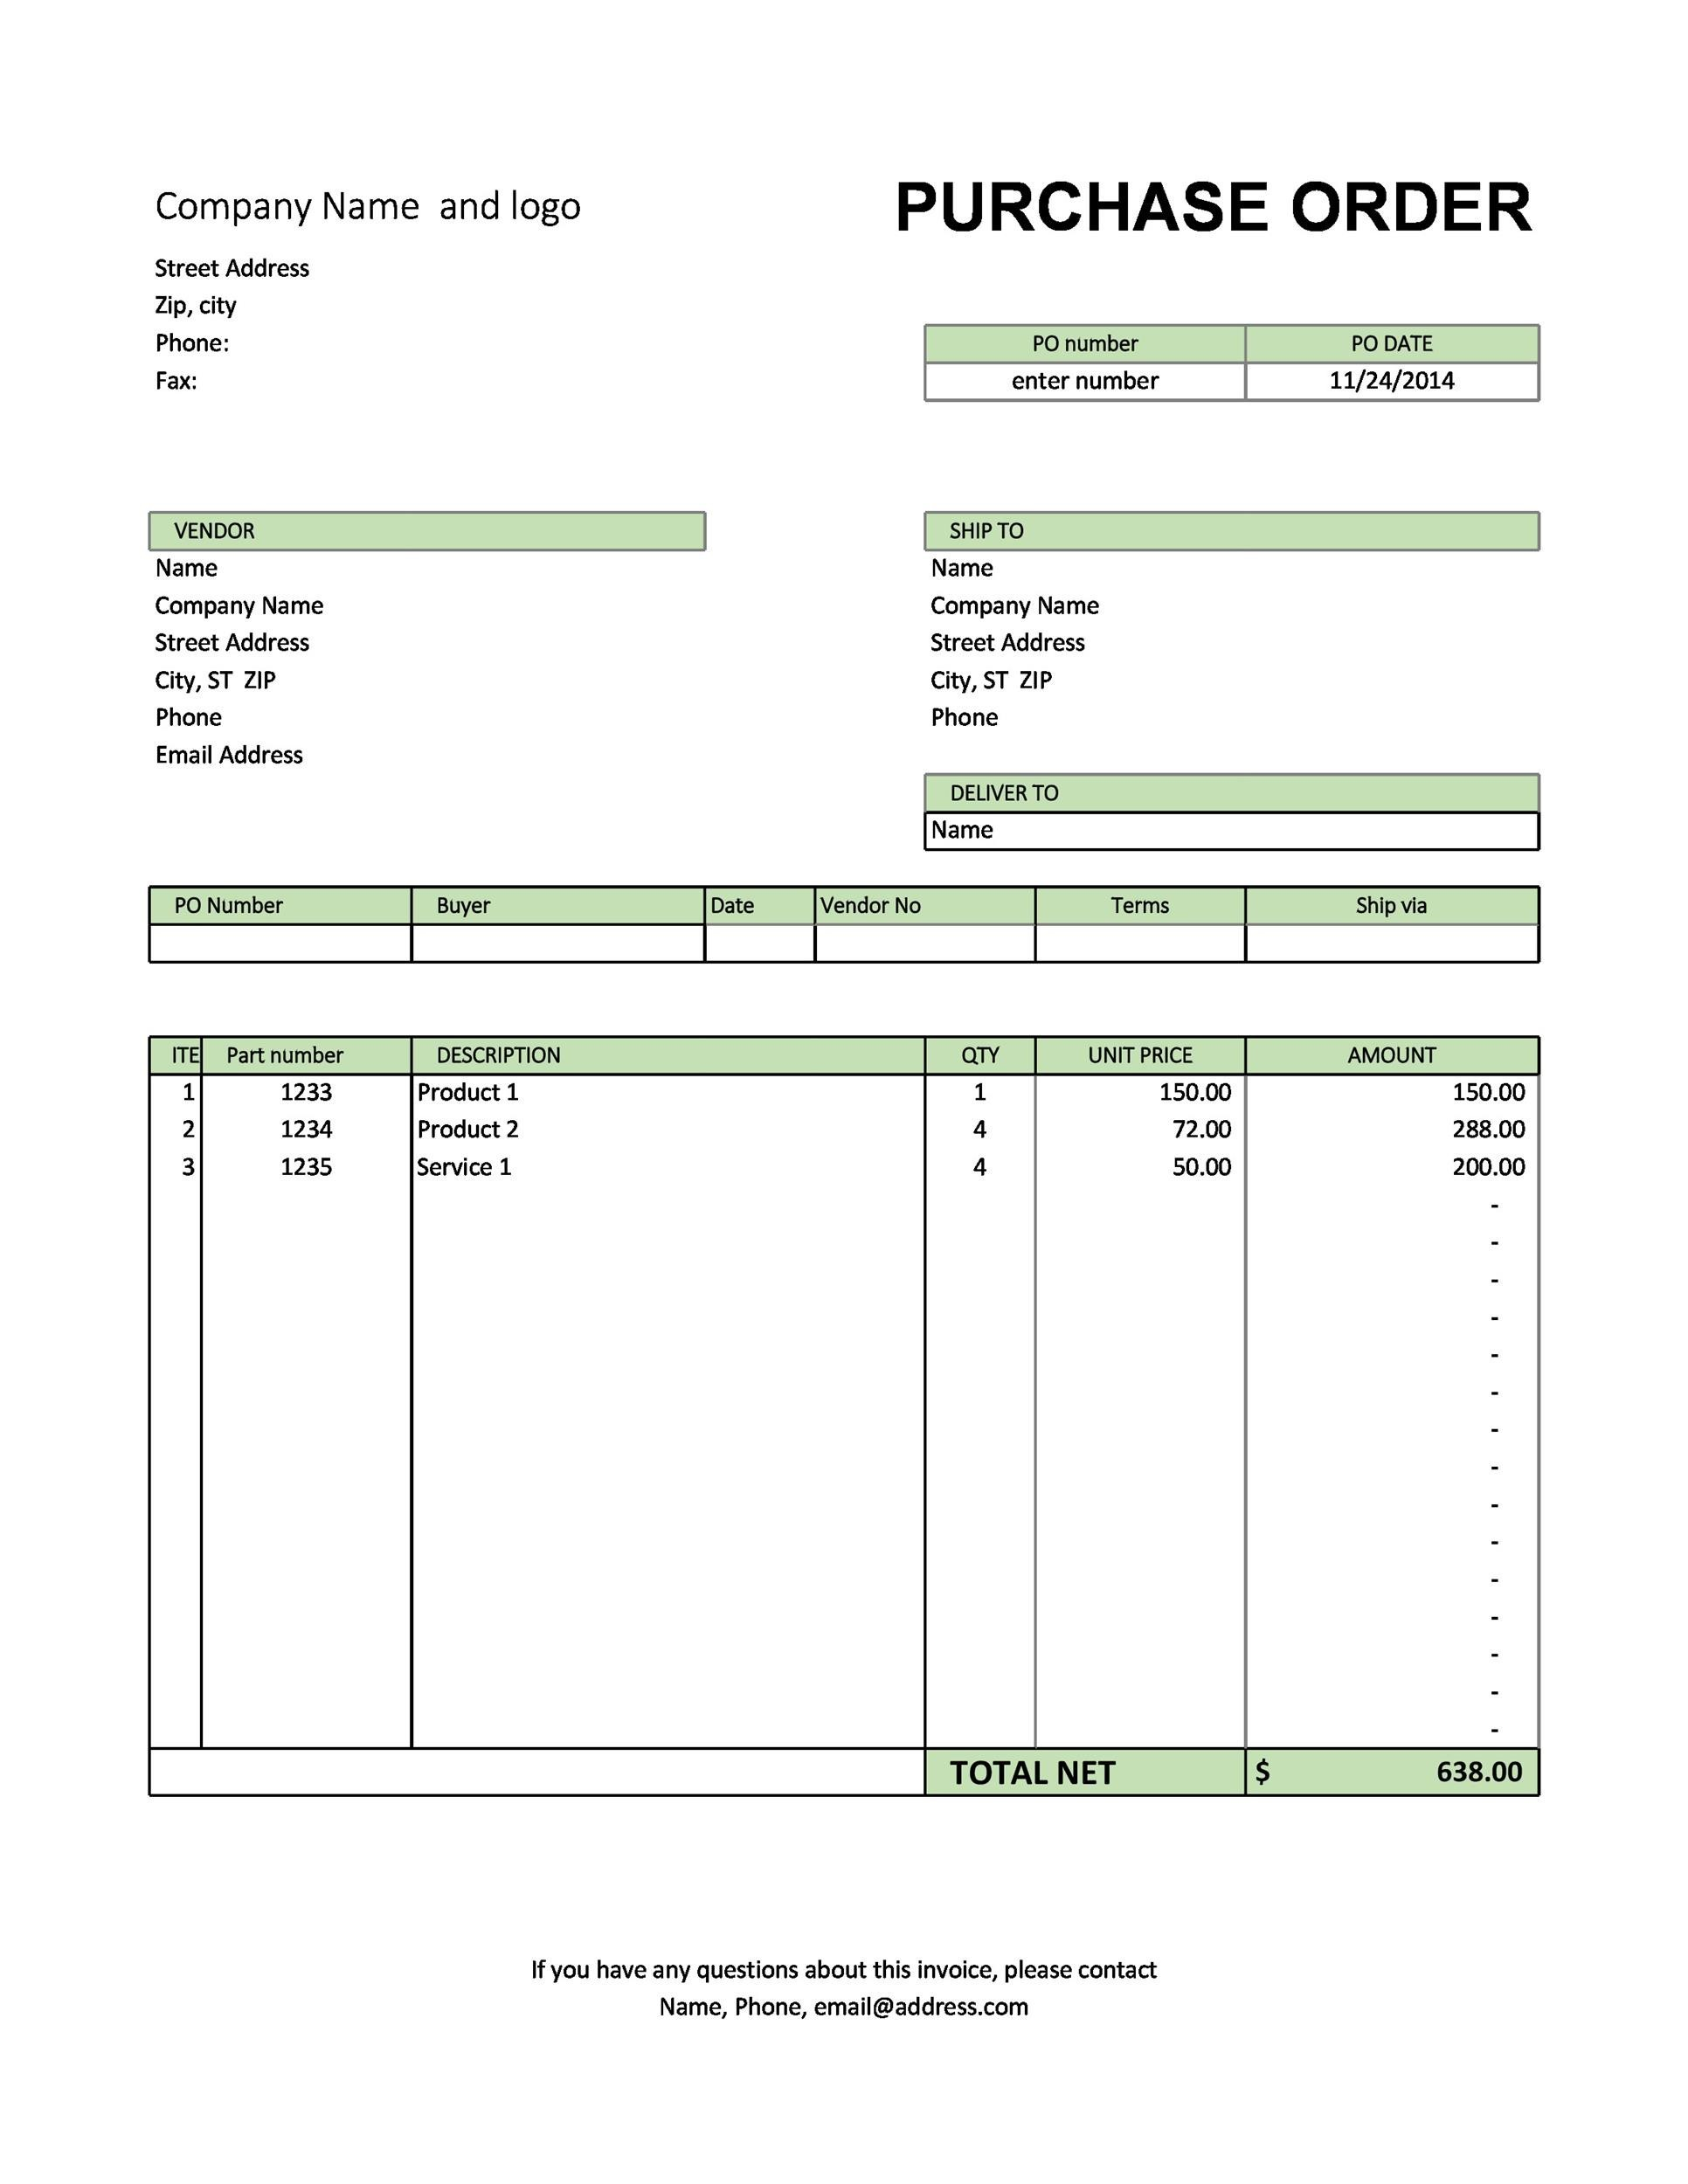 free templates purchase order  37 Free Purchase Order Templates in Word